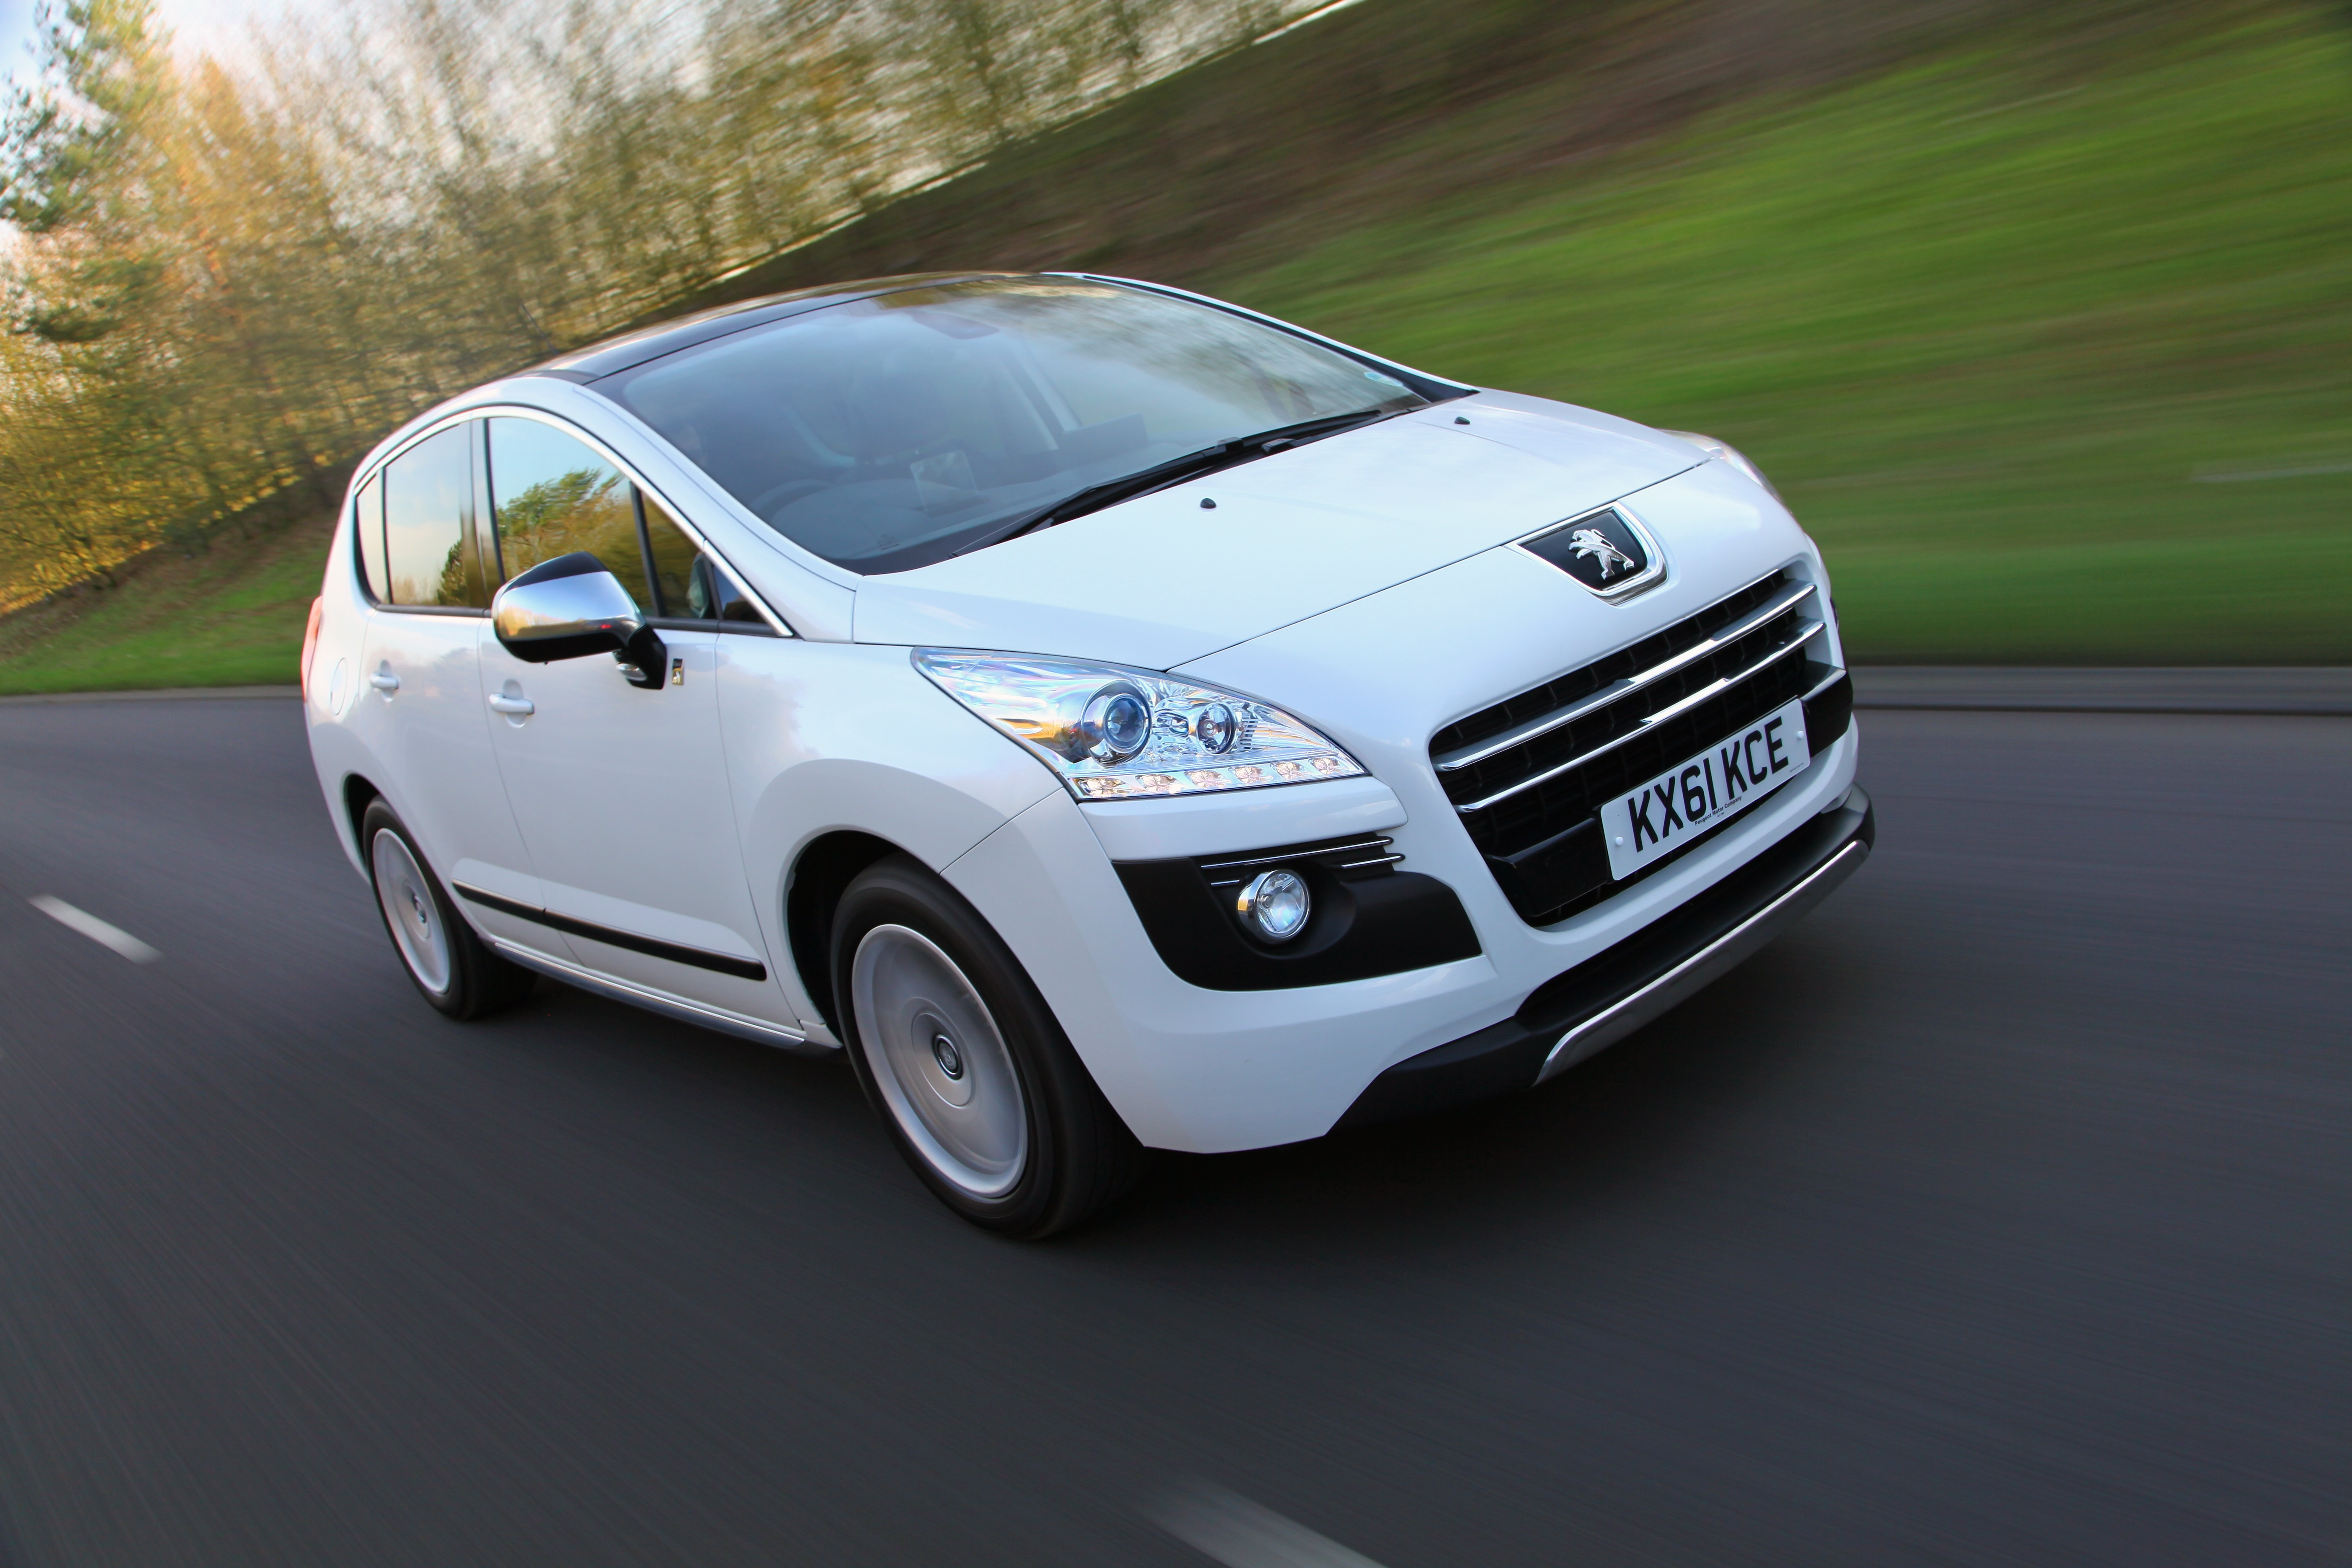 peugeot 3008 2 0 hdi hybrid4 104g car write ups. Black Bedroom Furniture Sets. Home Design Ideas